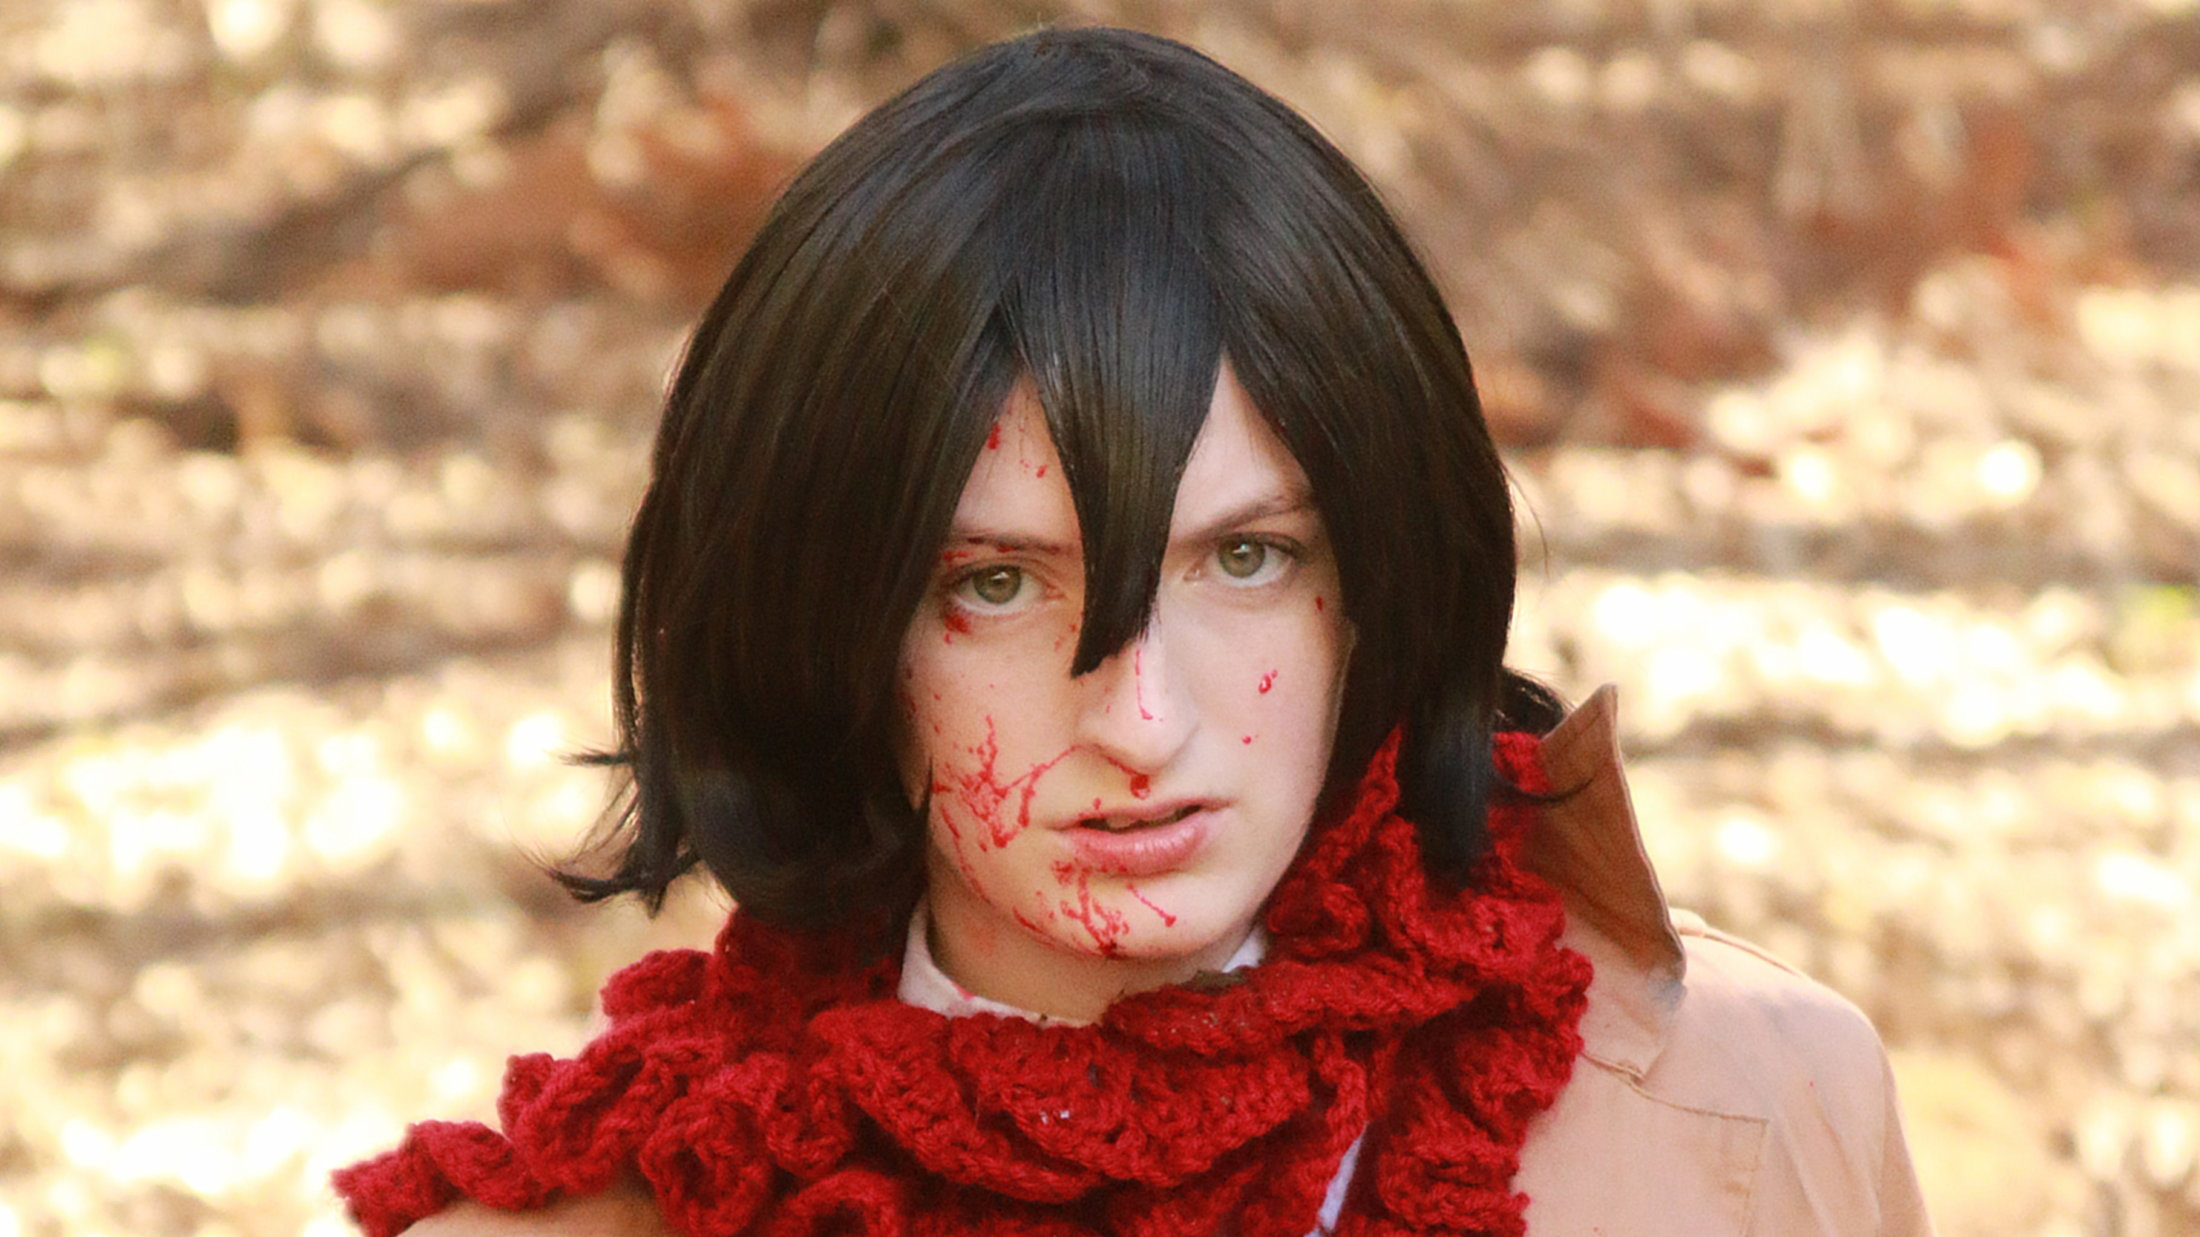 Mikasa Ackerman bloody - Attack on Titan